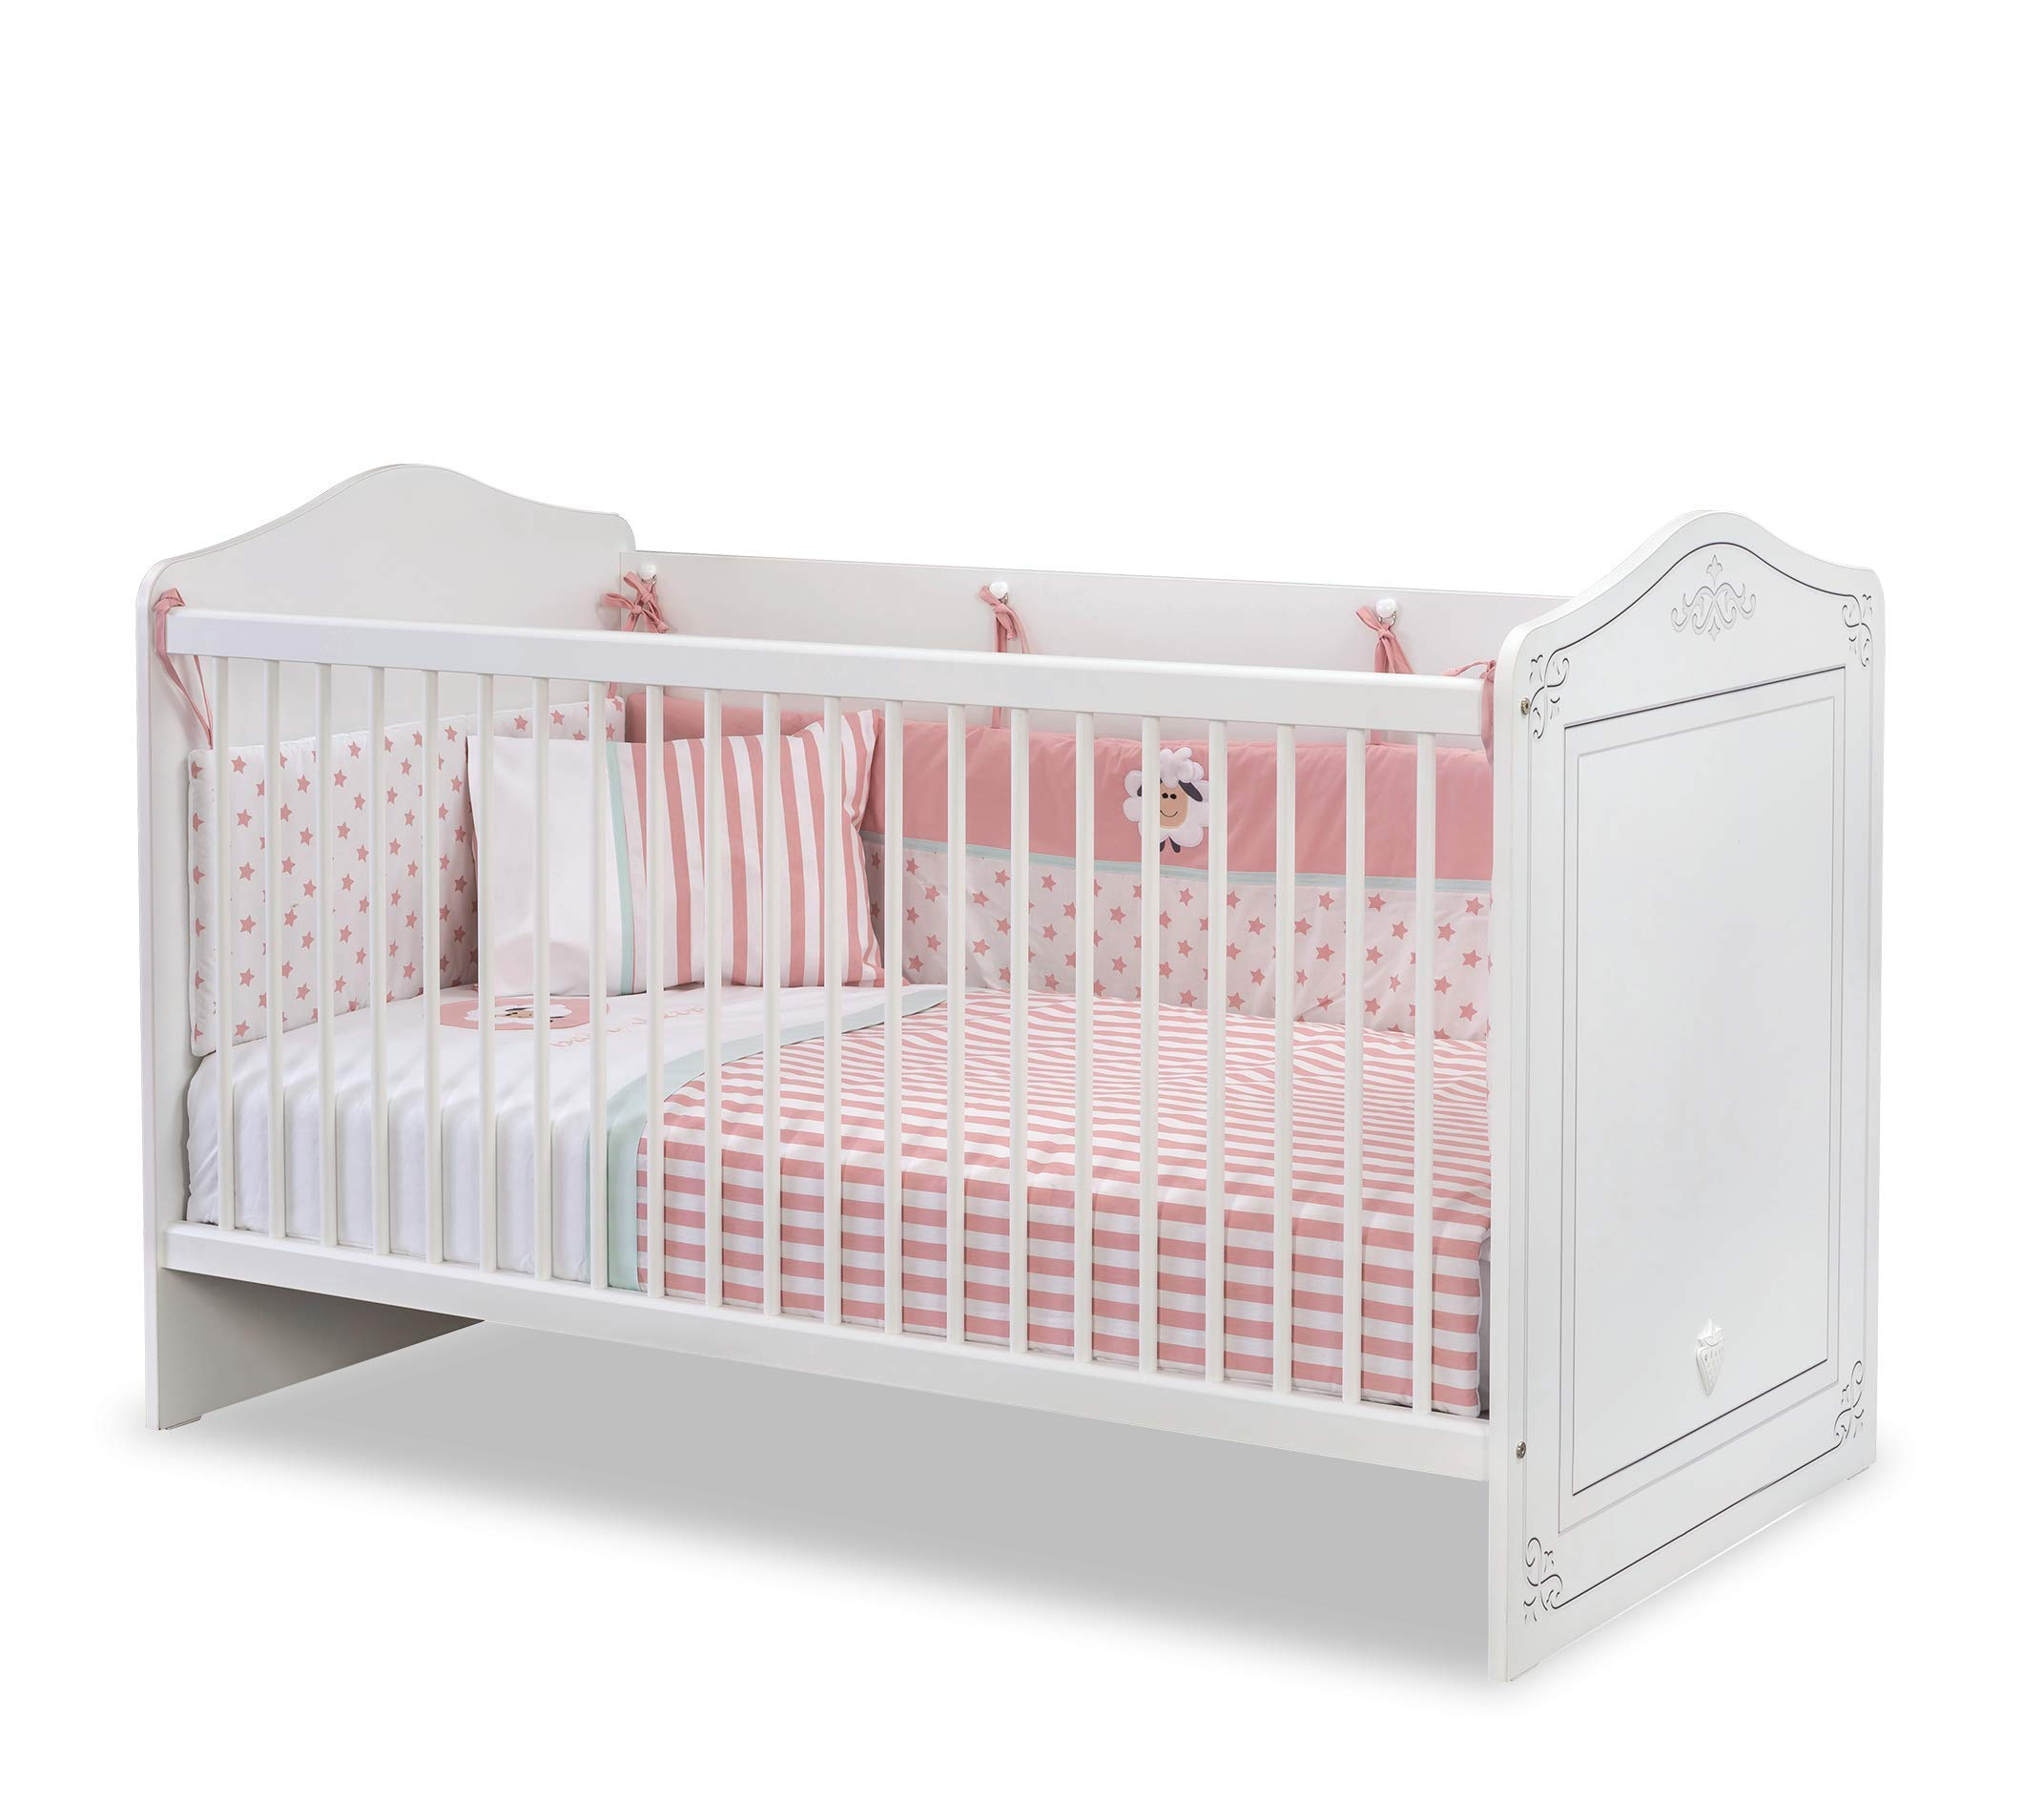 Dafnedesign.com - Cot early childhood bedroom for newborn or toddler - A baby cot with safety cage with poles - Includes a mattress - Width: 146 cm Height: 92 cm depth: 78 cm - [Series: Daphne-Classical] - (DF11) Dafnedesign 1 bed early childhood bedroom Baby bed Safety cage with poles 2